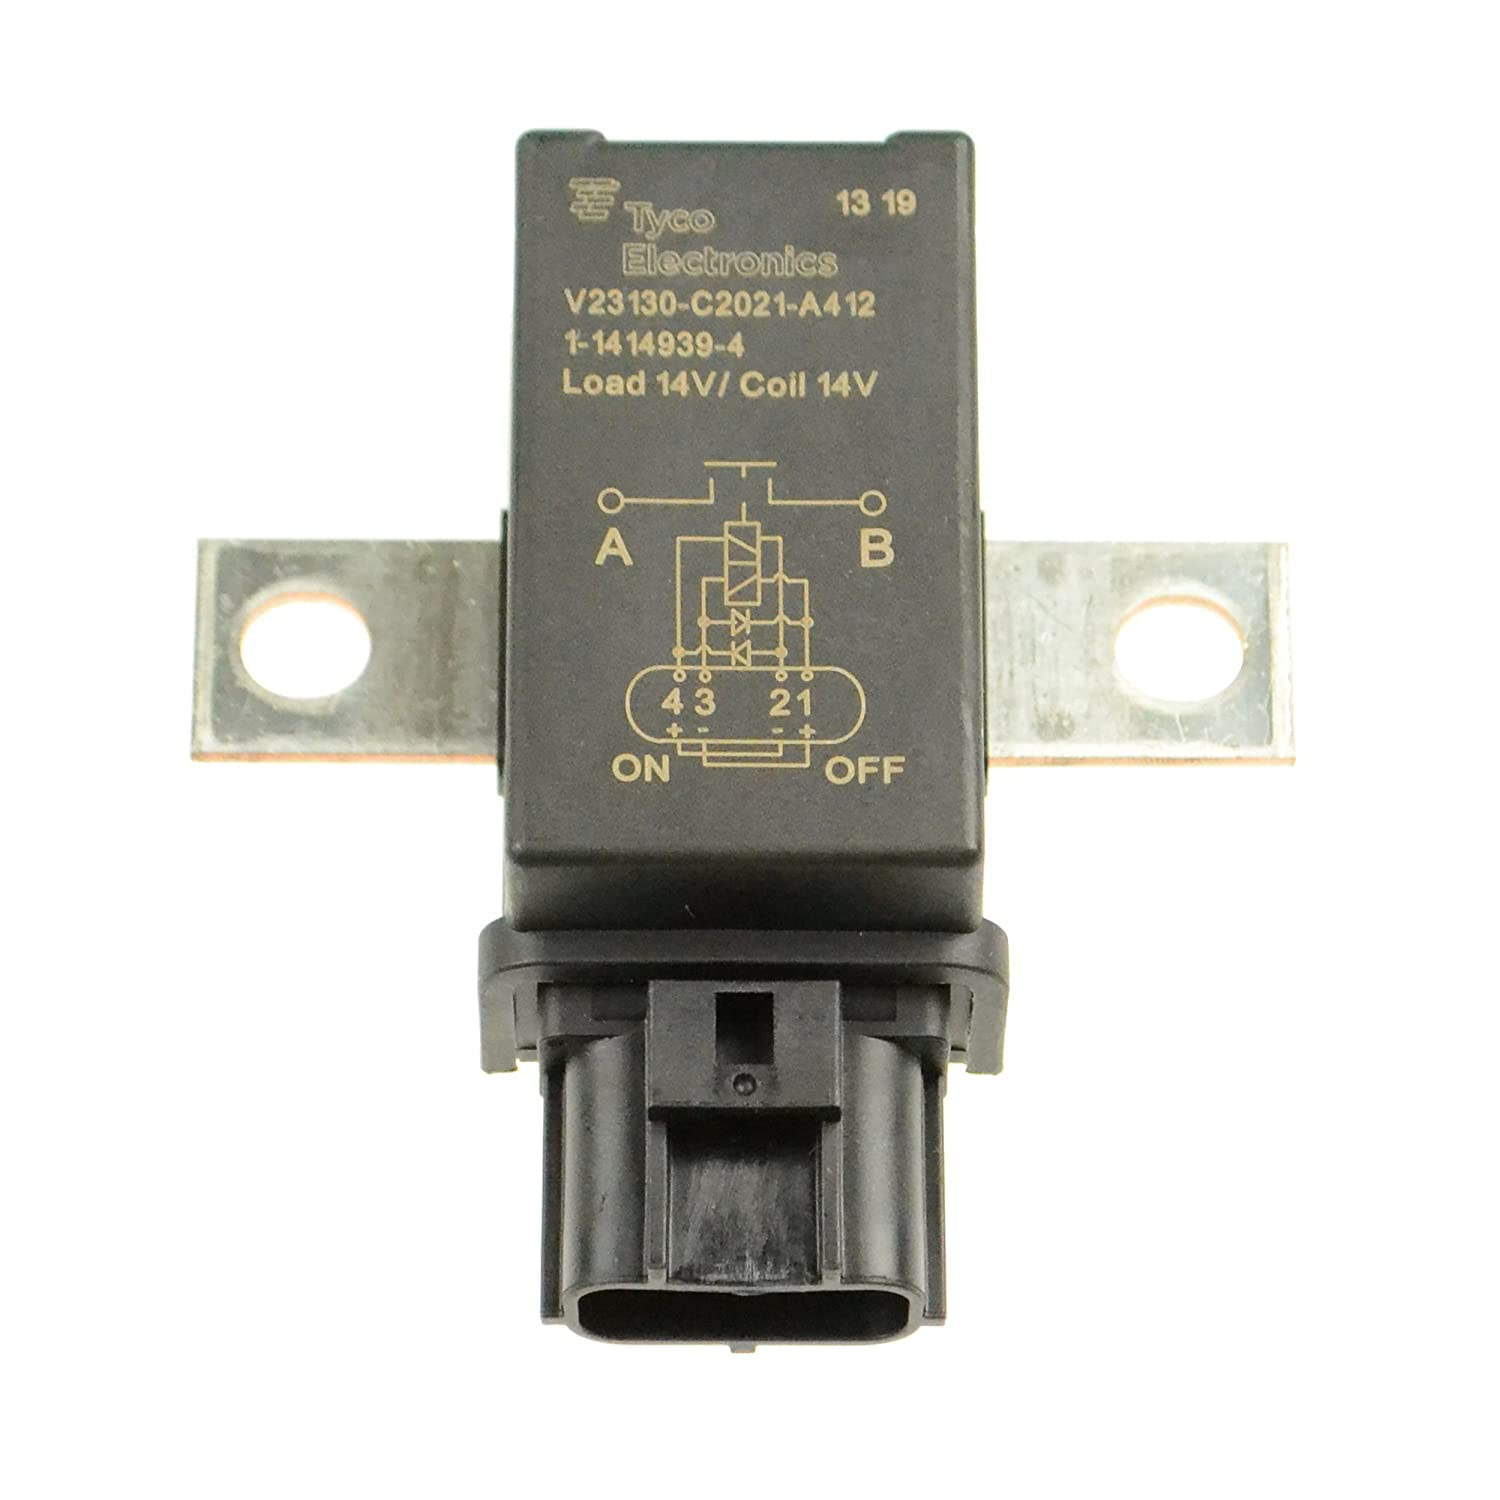 Tyco 1-1414939-4 Battery Disconnect Relay TTI Inc.